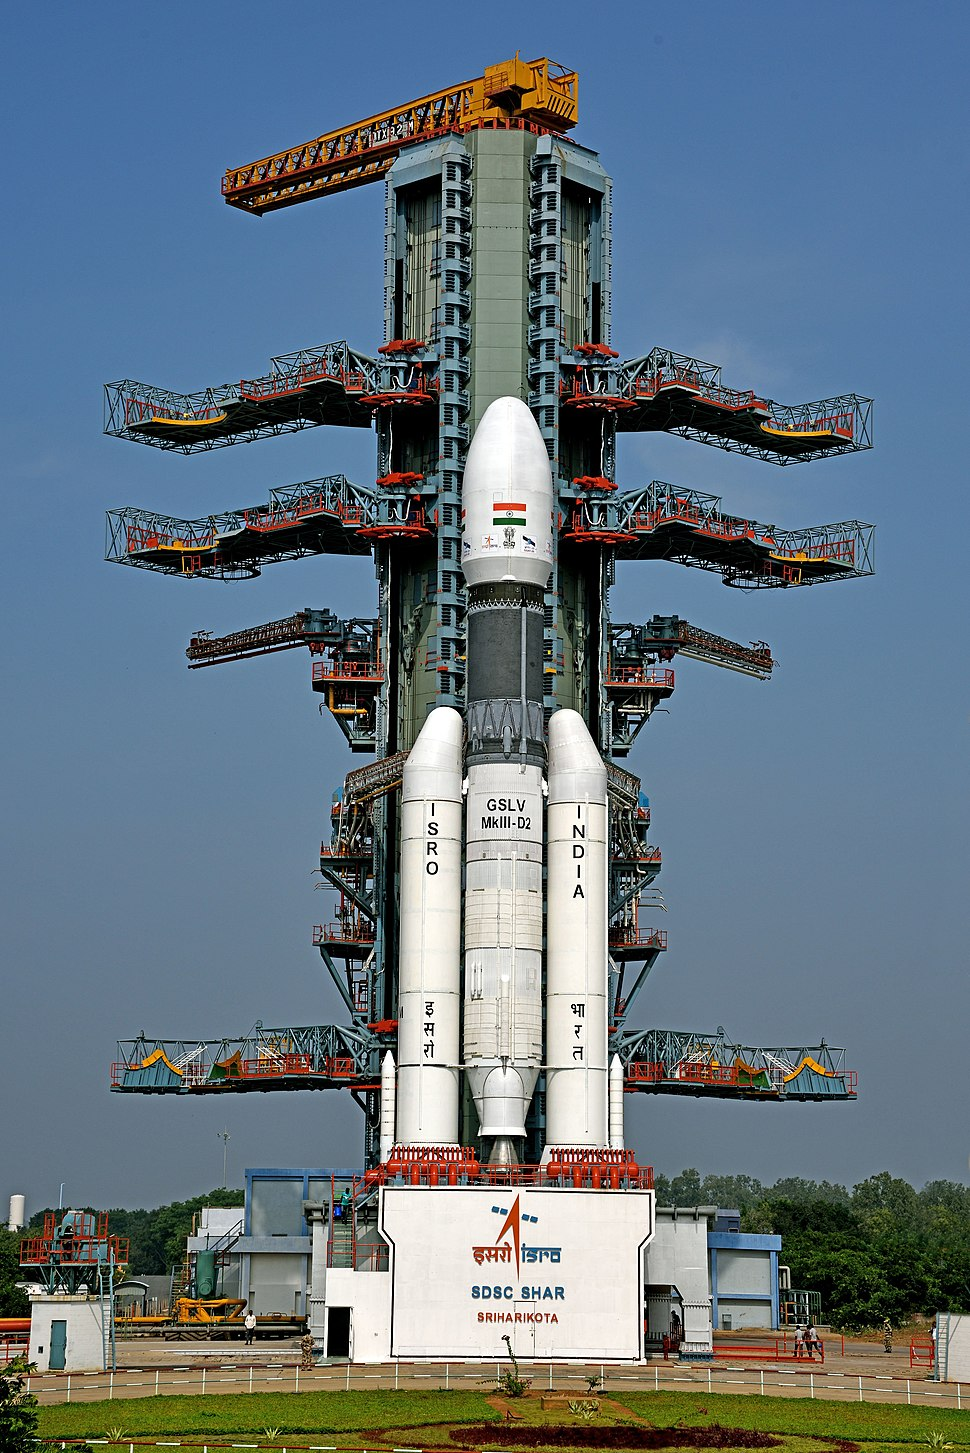 GSLV Mk III D2 with GSAT-29 on Second Launch Pad of Satish Dhawan Space Centre, Sriharikota (SDSC SHAR)